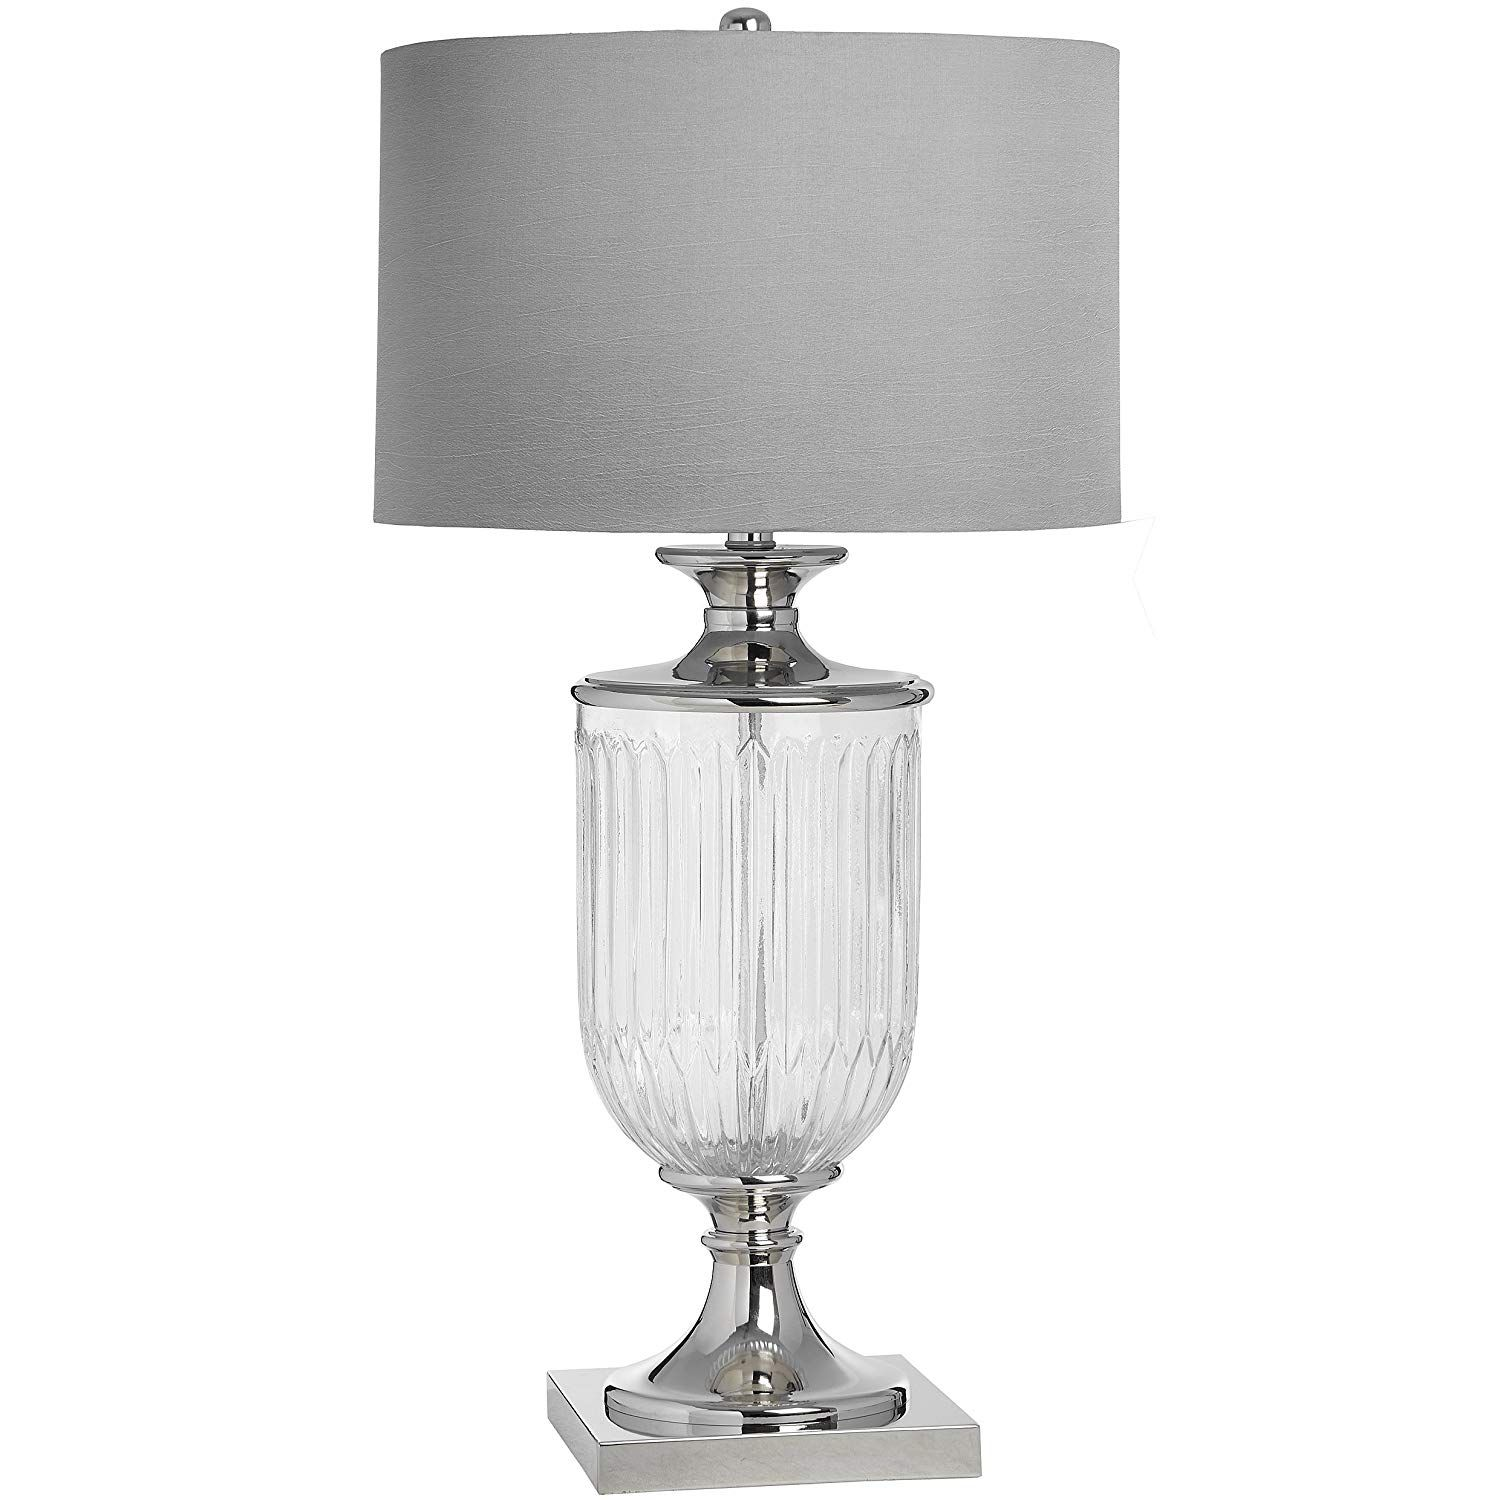 Great decorative piece for the home | Table lamp, Grey ...